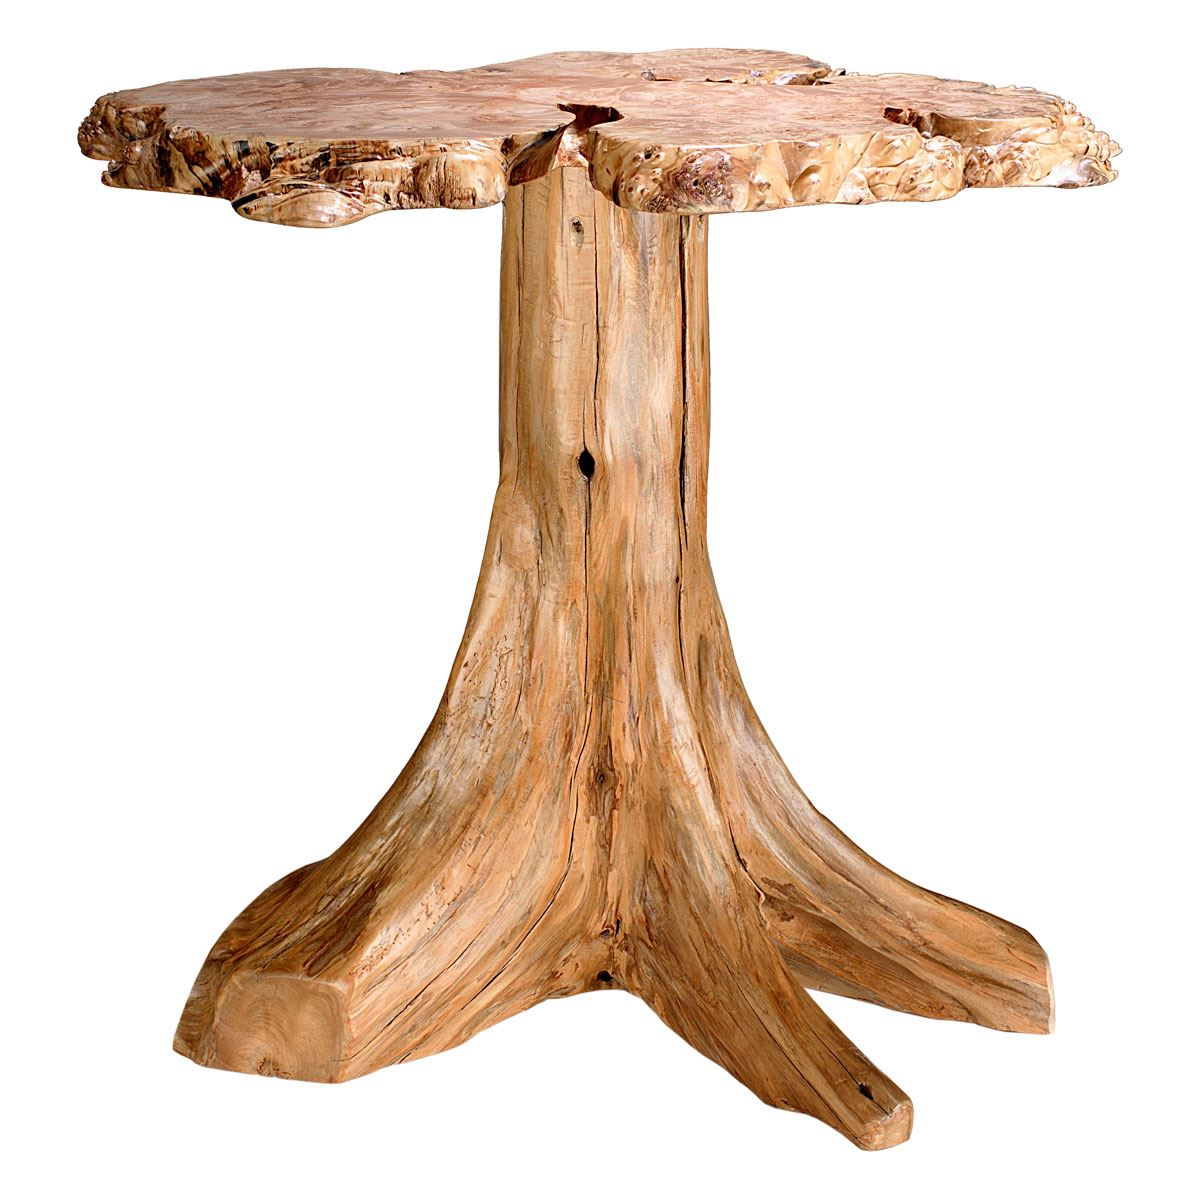 Modern rustic wood dining table - Rustic Log Burl Accent Table King Dinettes Custom Dining Furniture